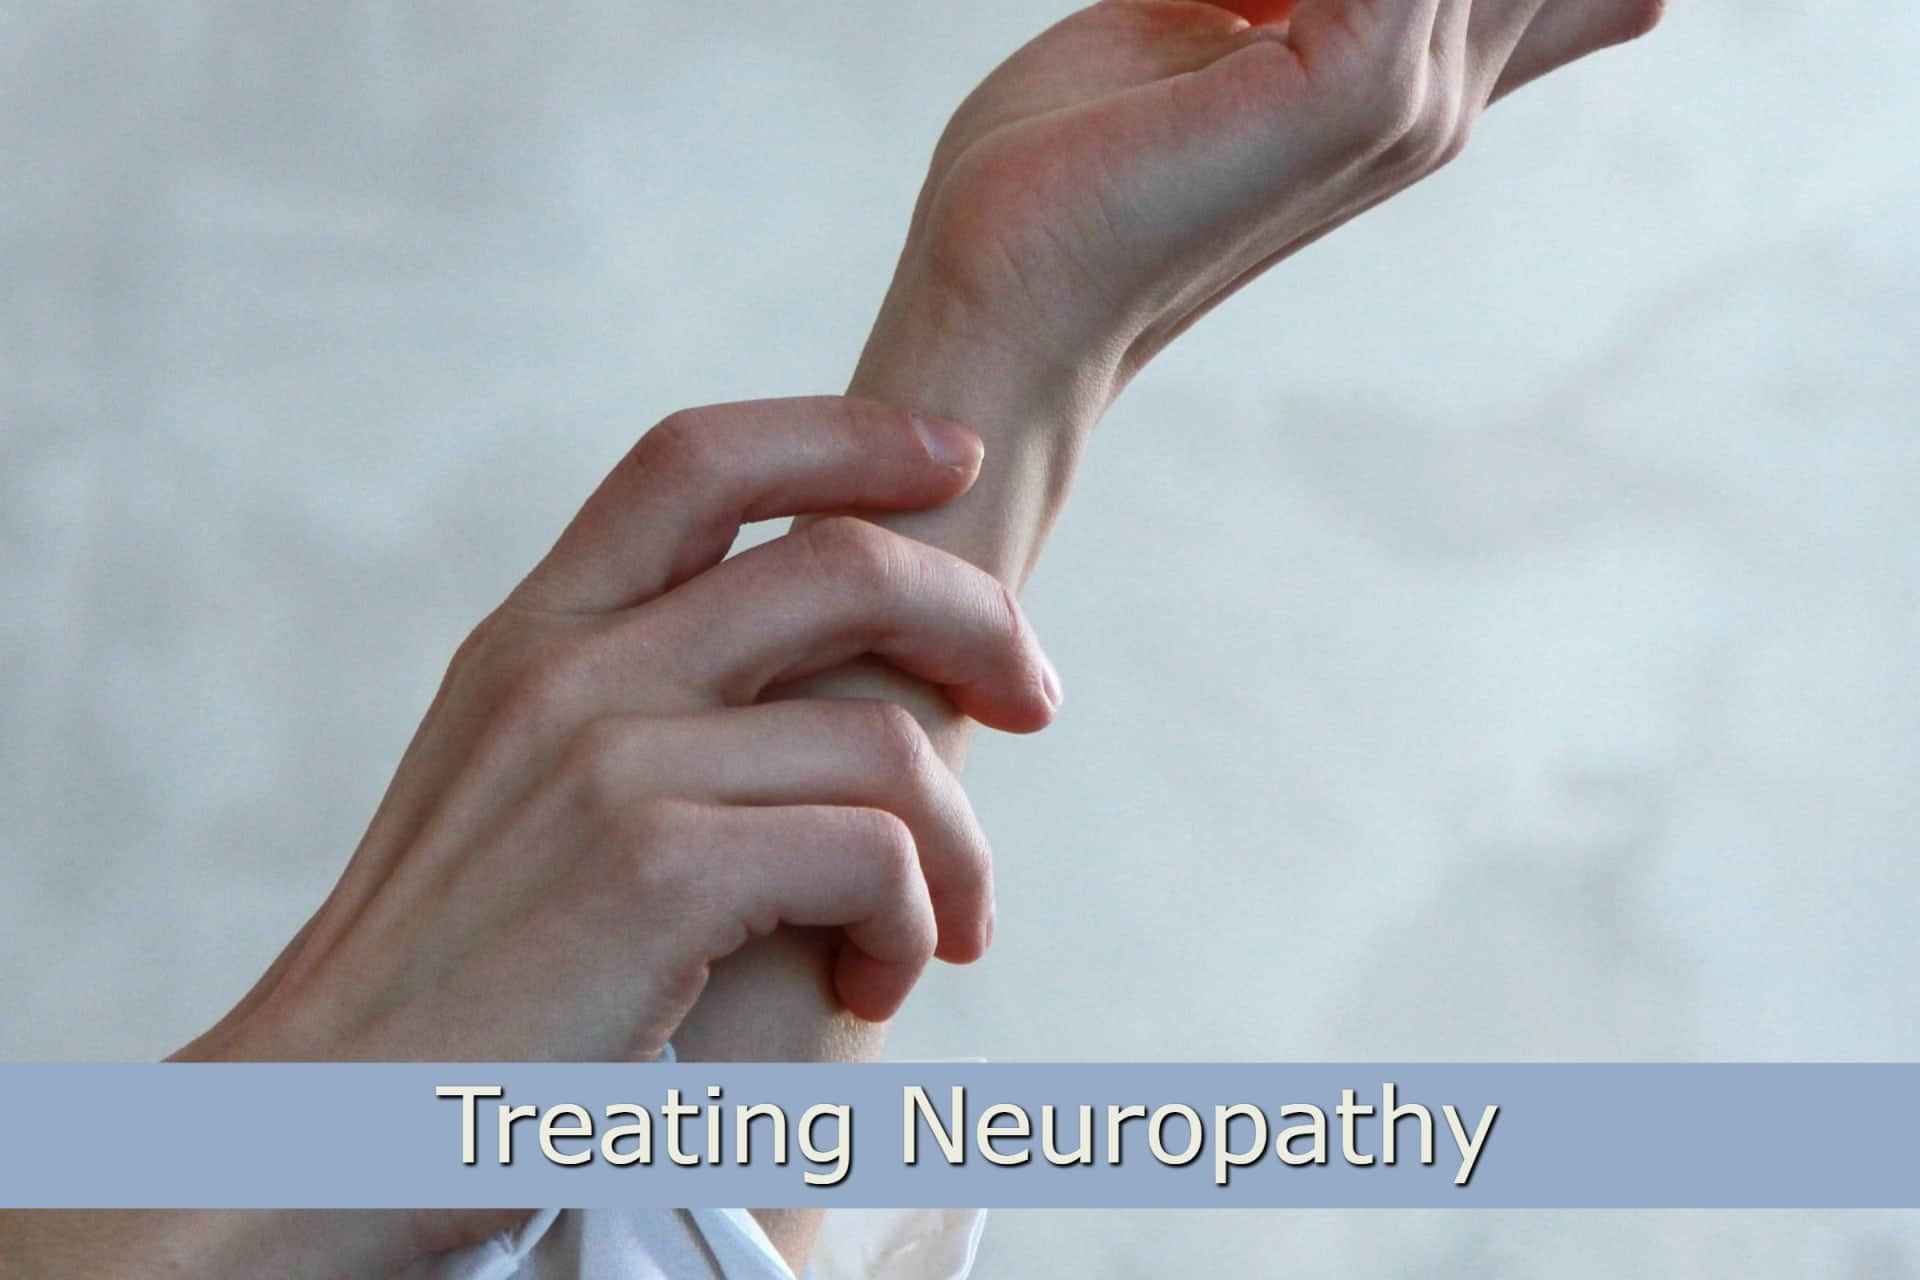 Treating Neuropathy